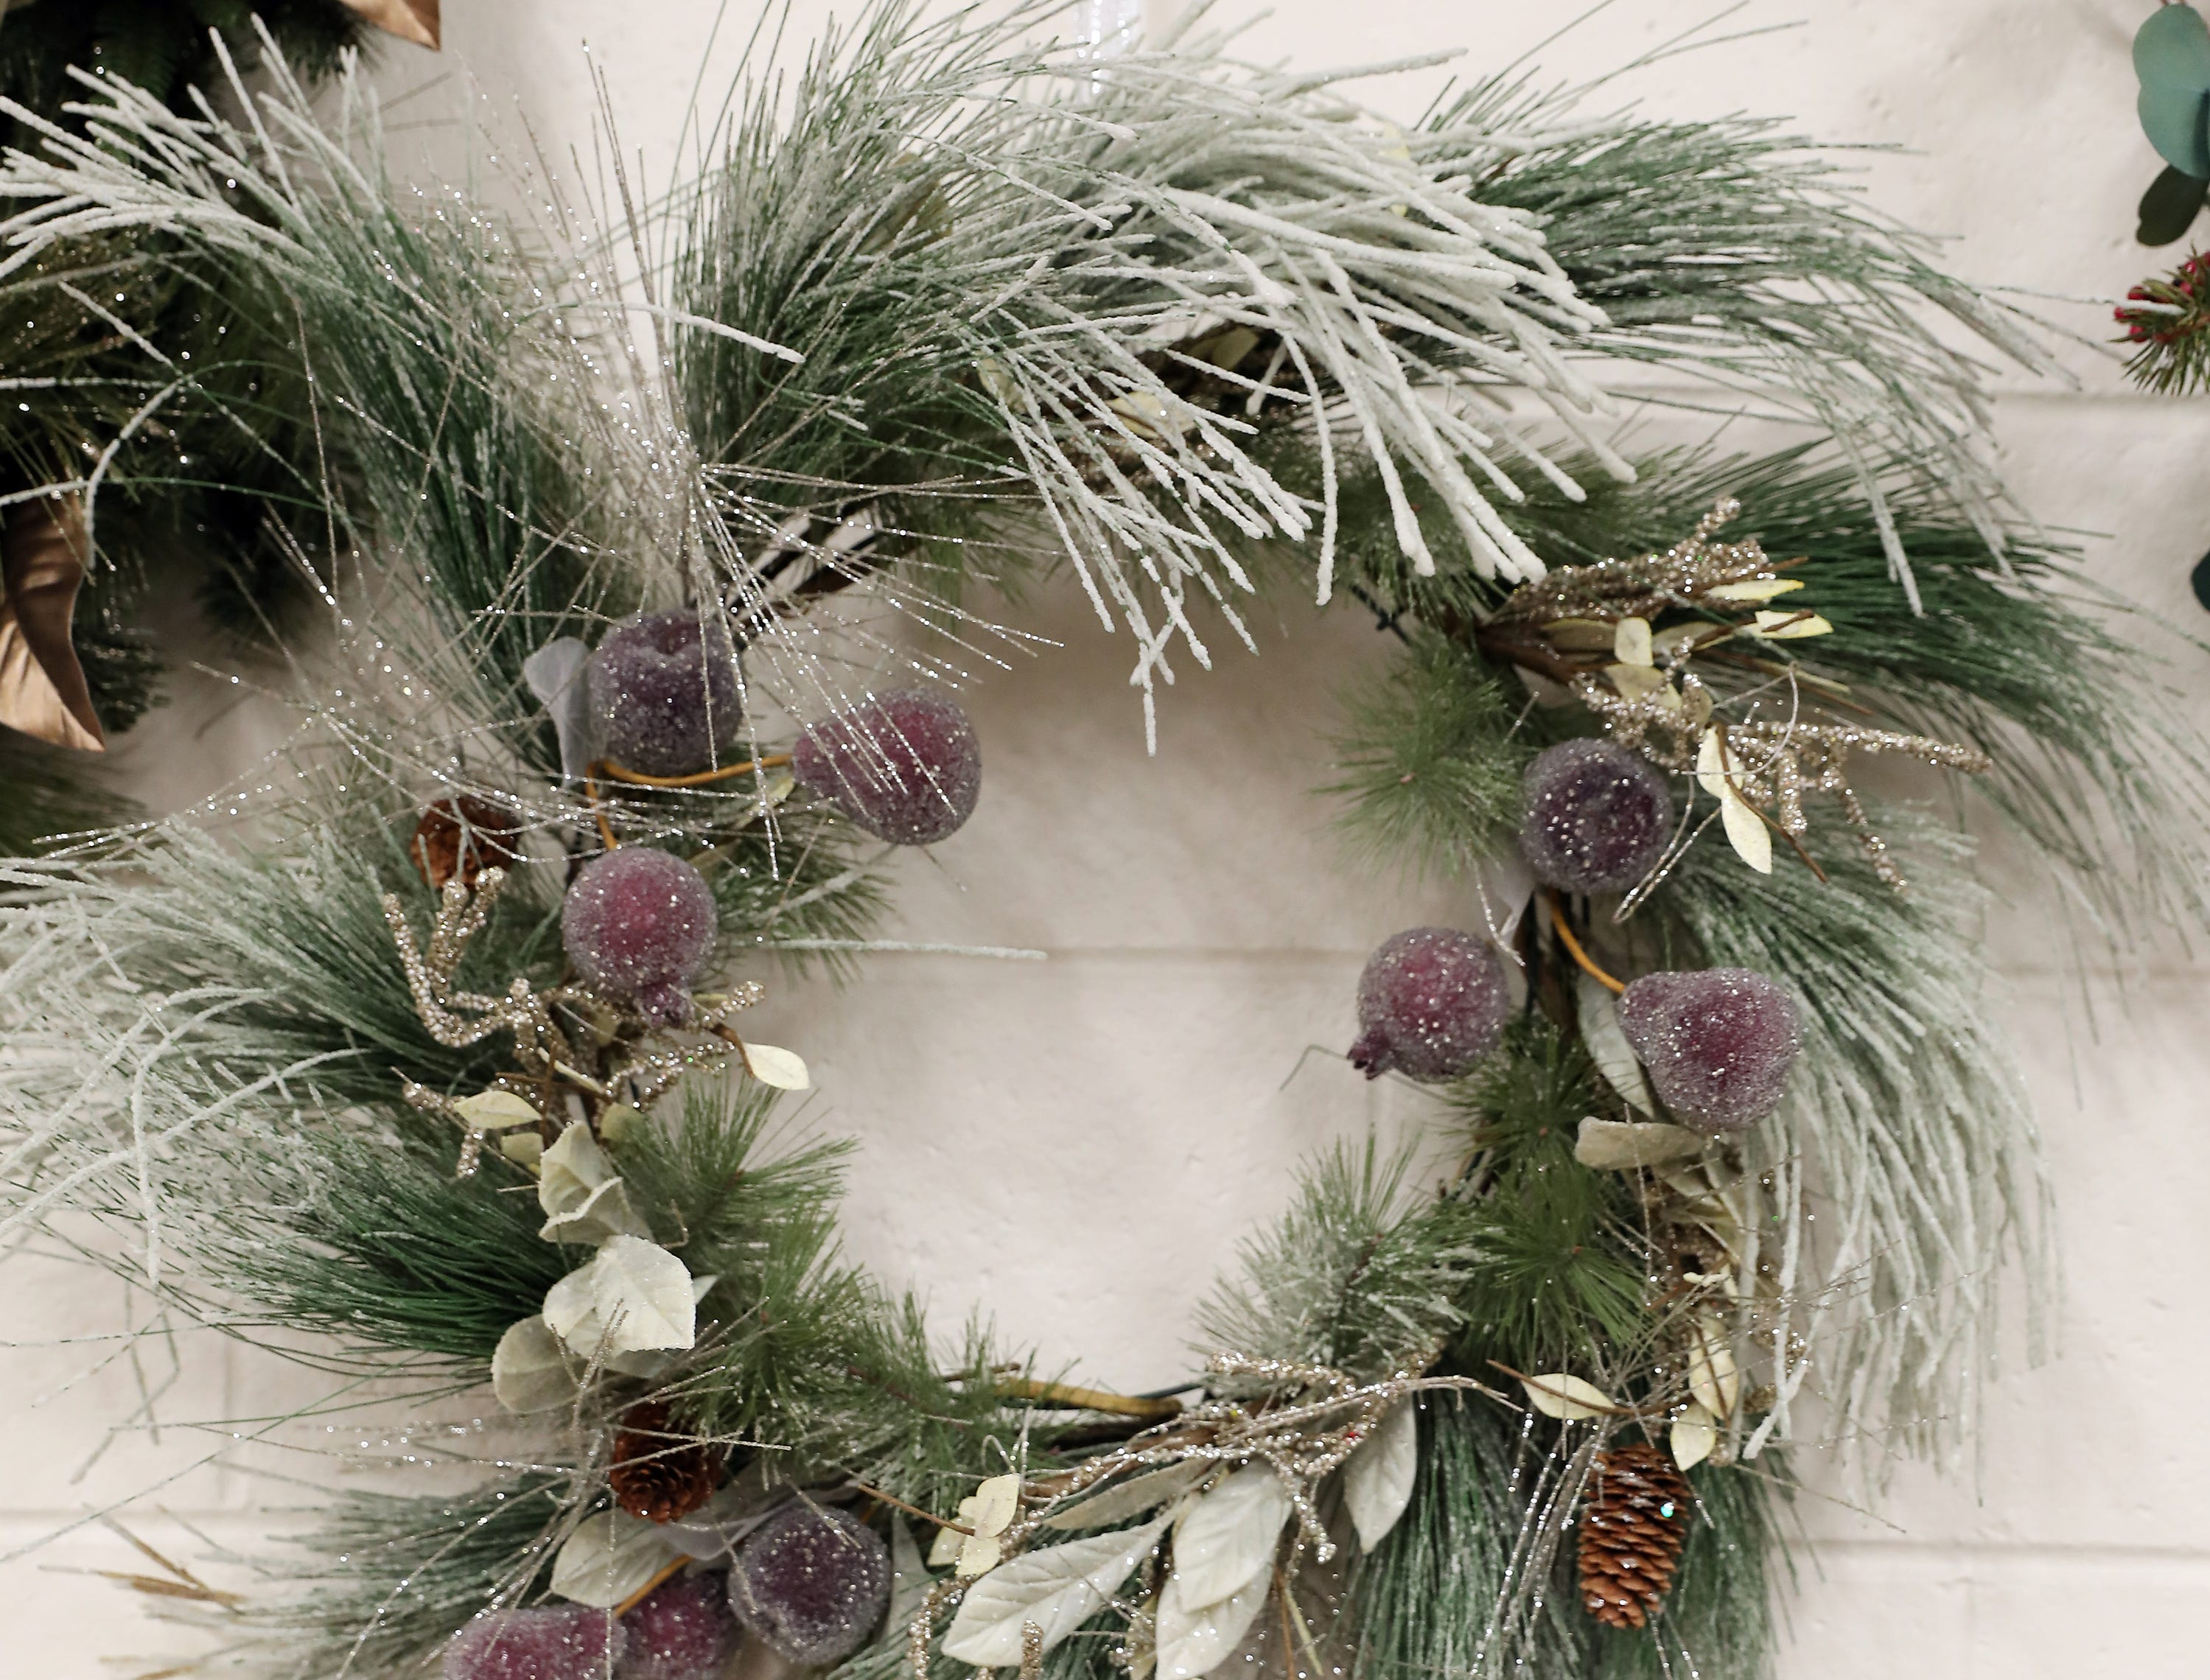 87	12:30 PM	Muskingum County Community Foundation	Wreath	Groundhog Day!	Frosted winter green wreath with frosted pine cones and gold accents.		2 tickets to the 2019 Groundhog event on February 1, 2019